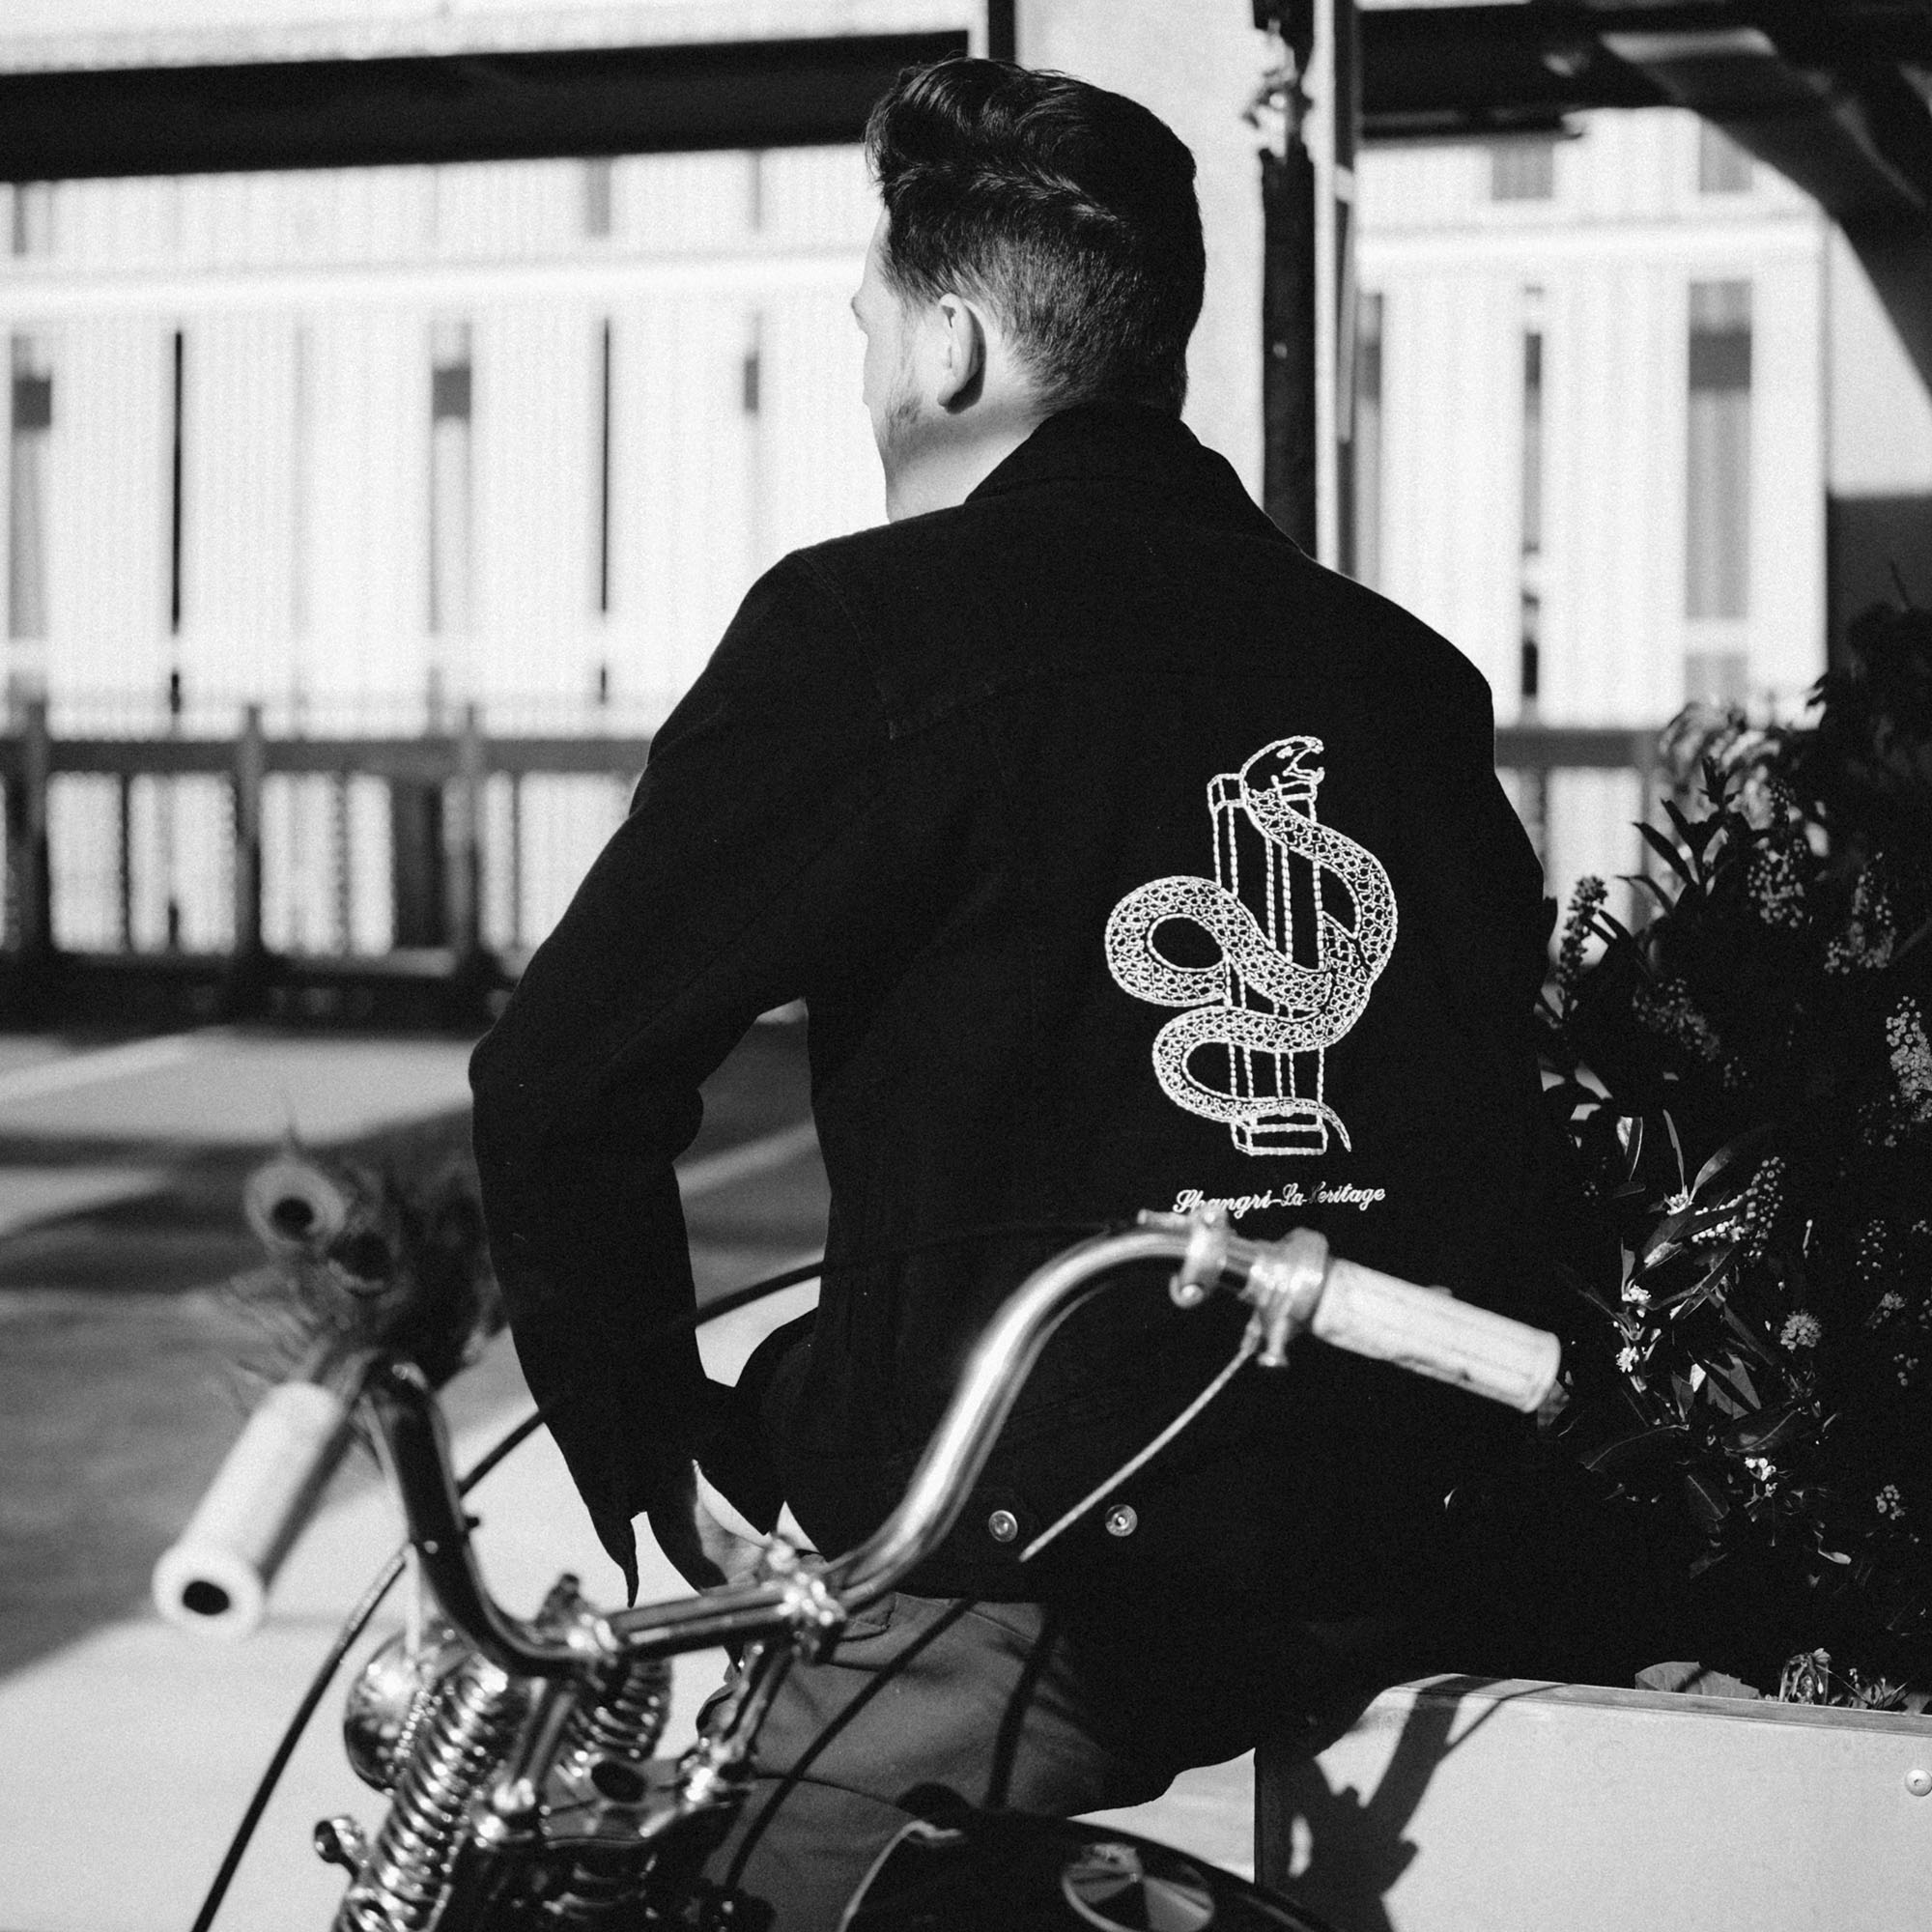 shangri-la-heritage-new-single-rider-sapientia-black-canvas-jacket-lifestyle-4